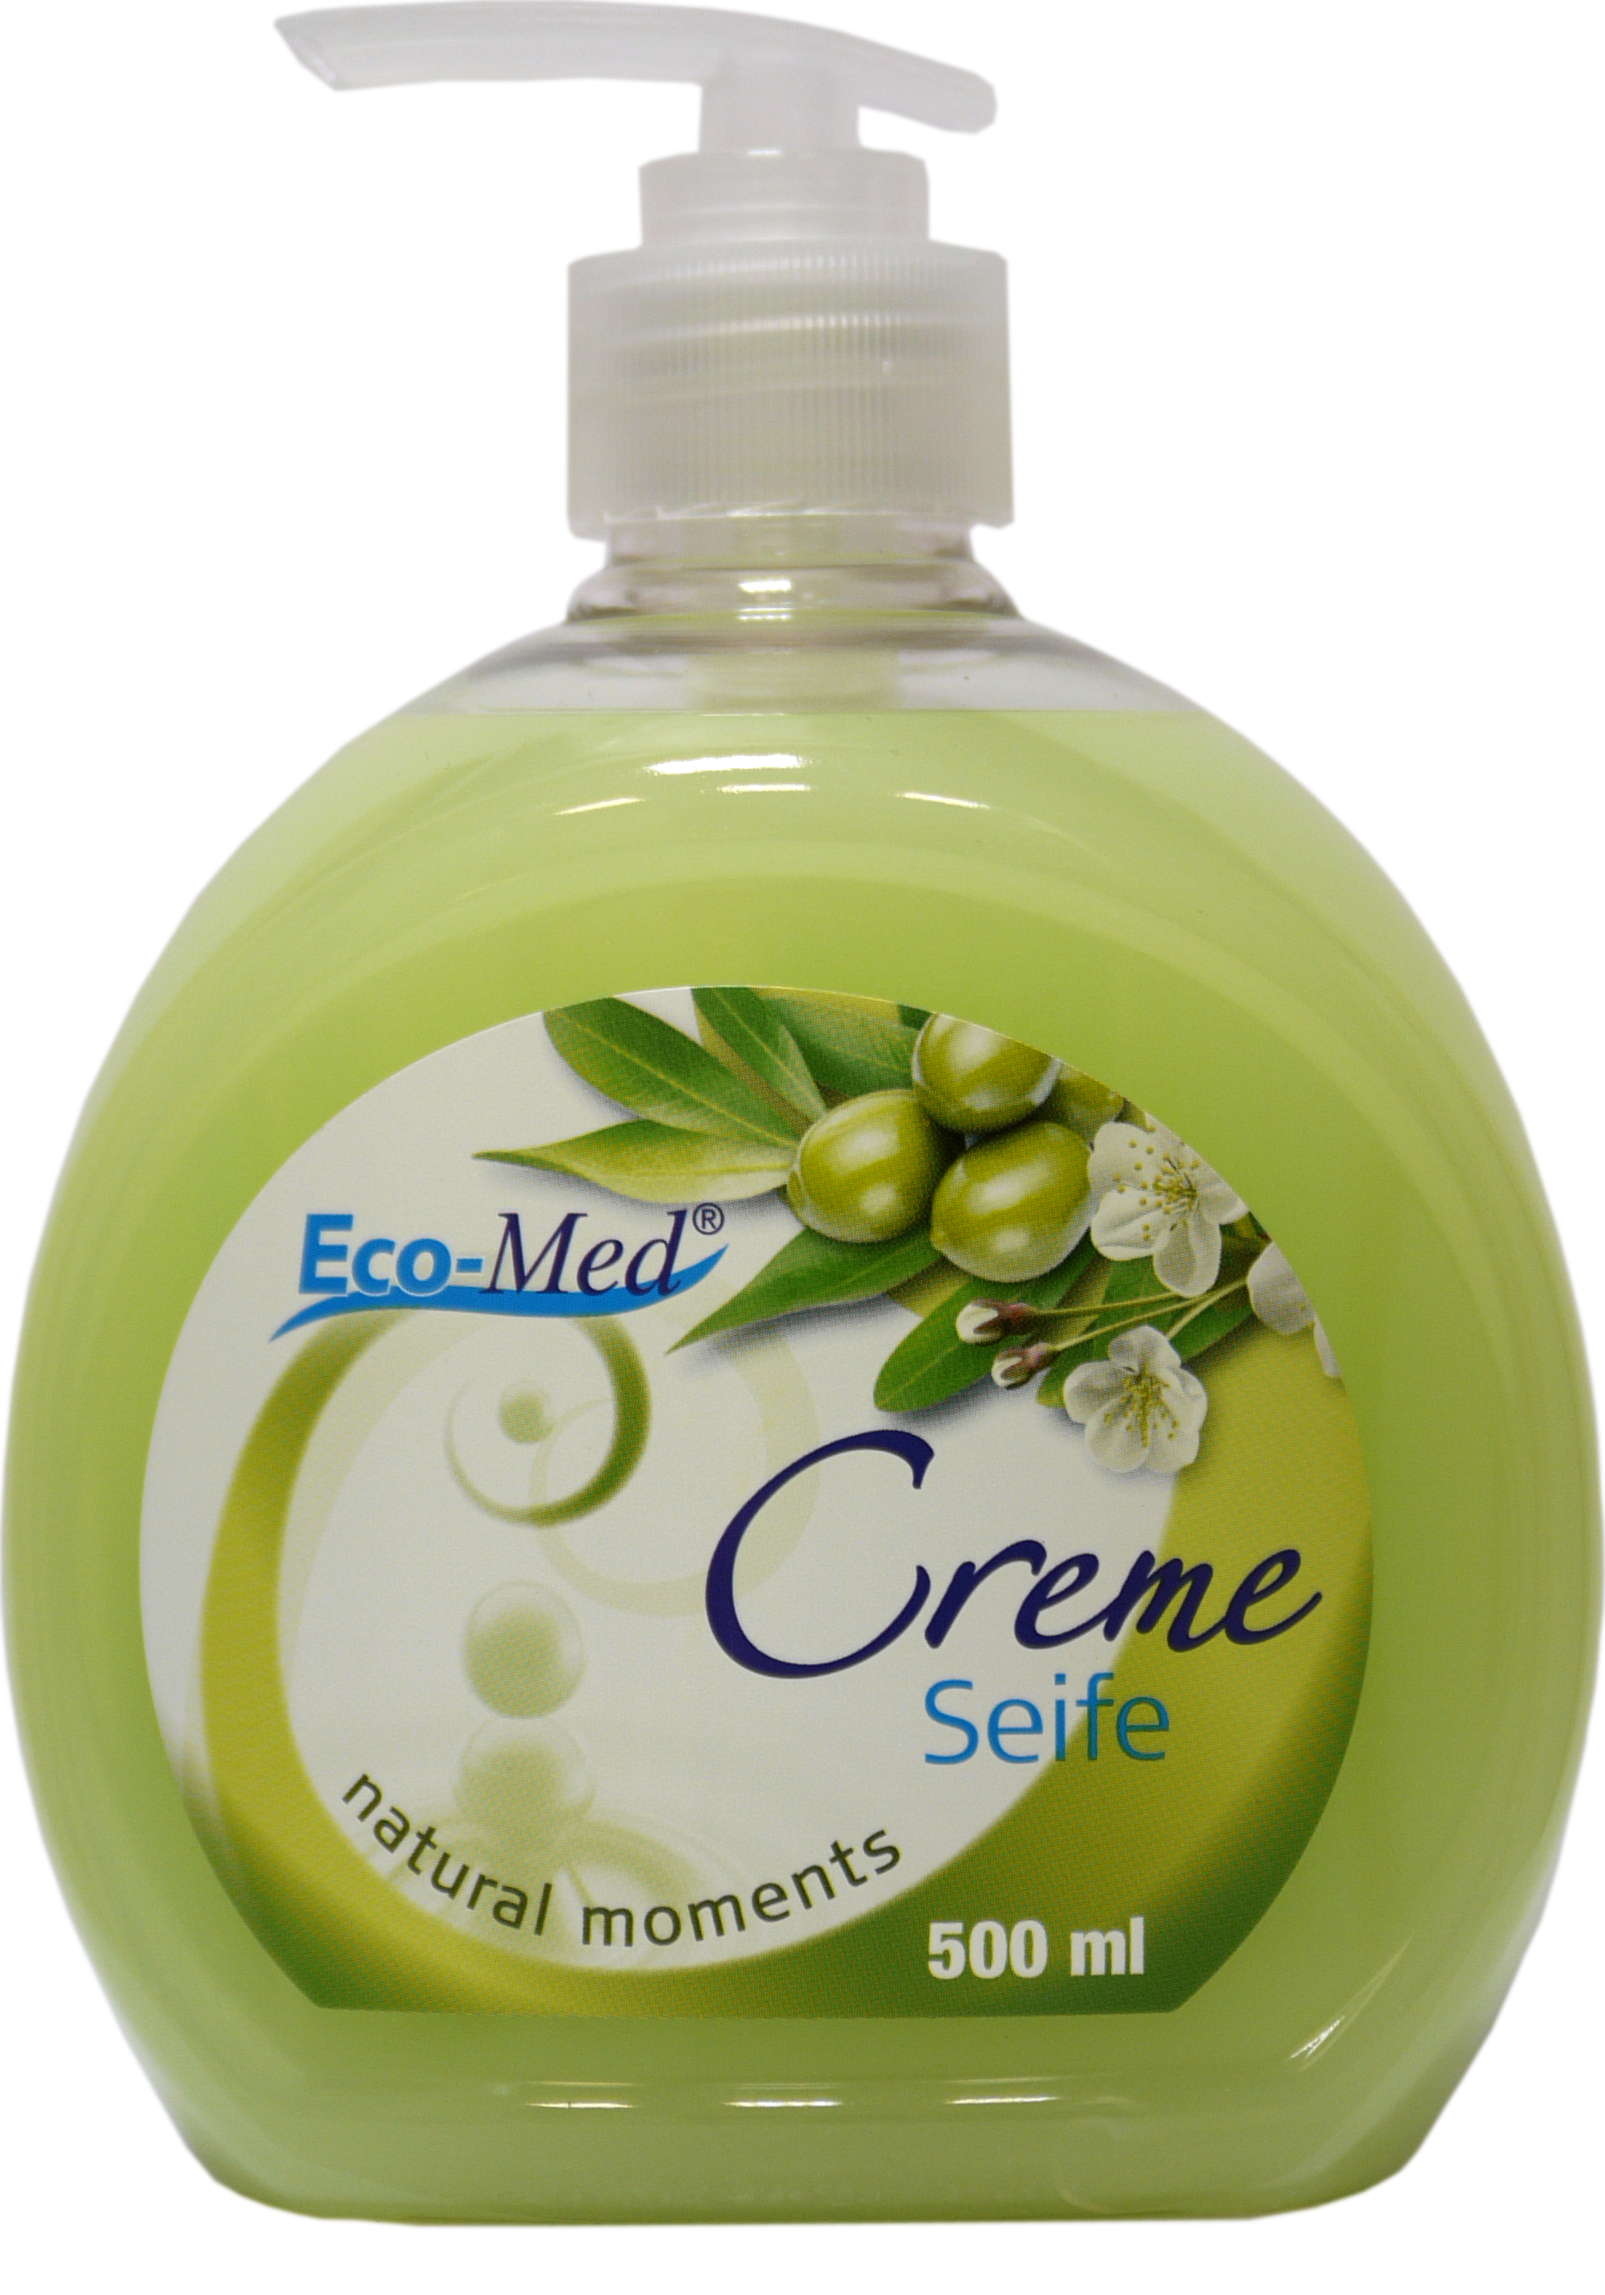 01603 - Eco-Med Cremeseife 500 ml Natural Moments